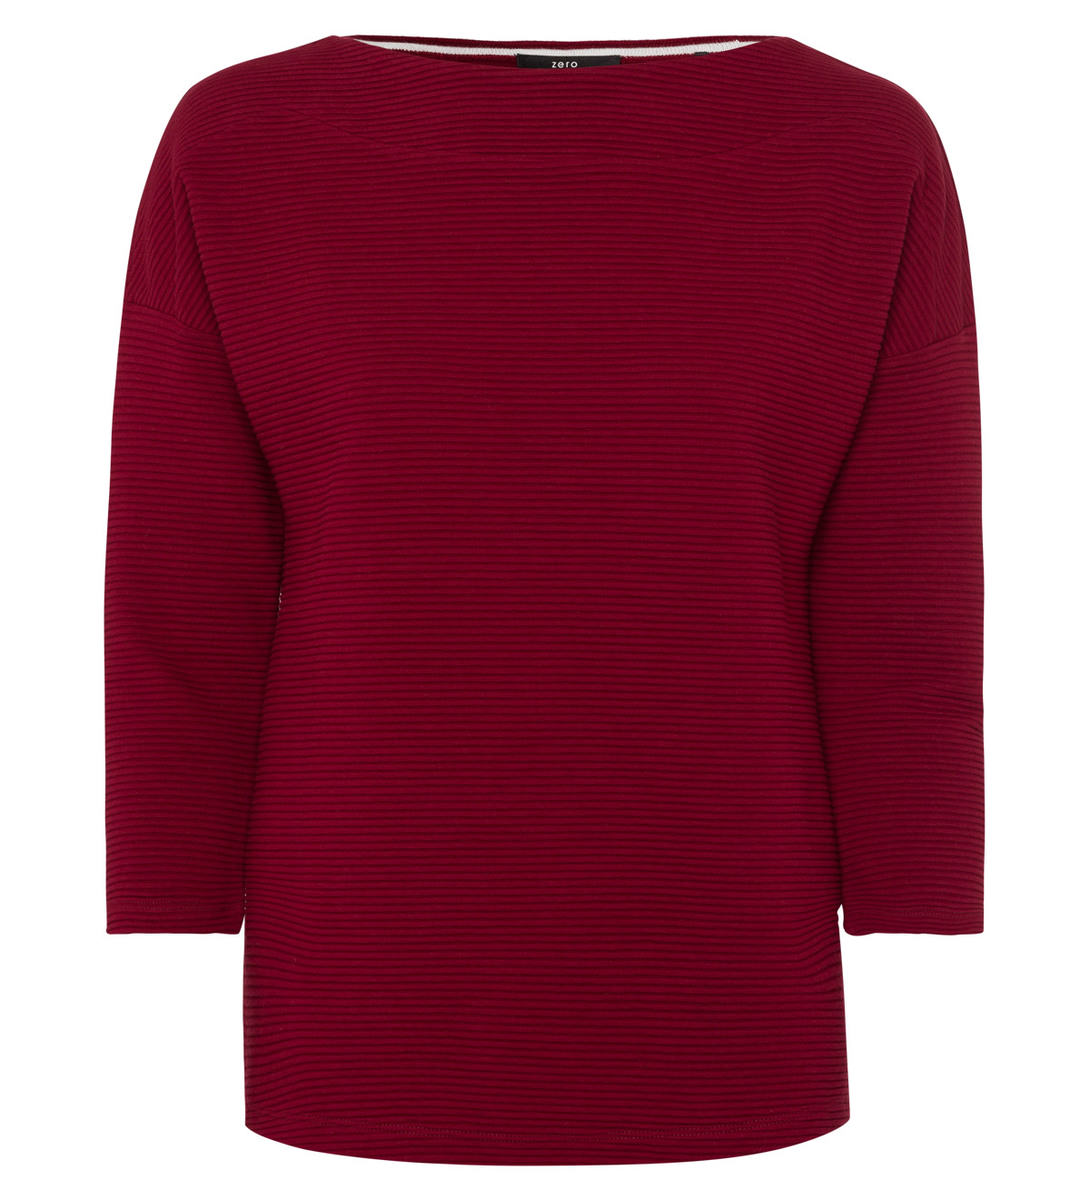 Sweatshirt mit U-Boot-Ausschnitt in wine red